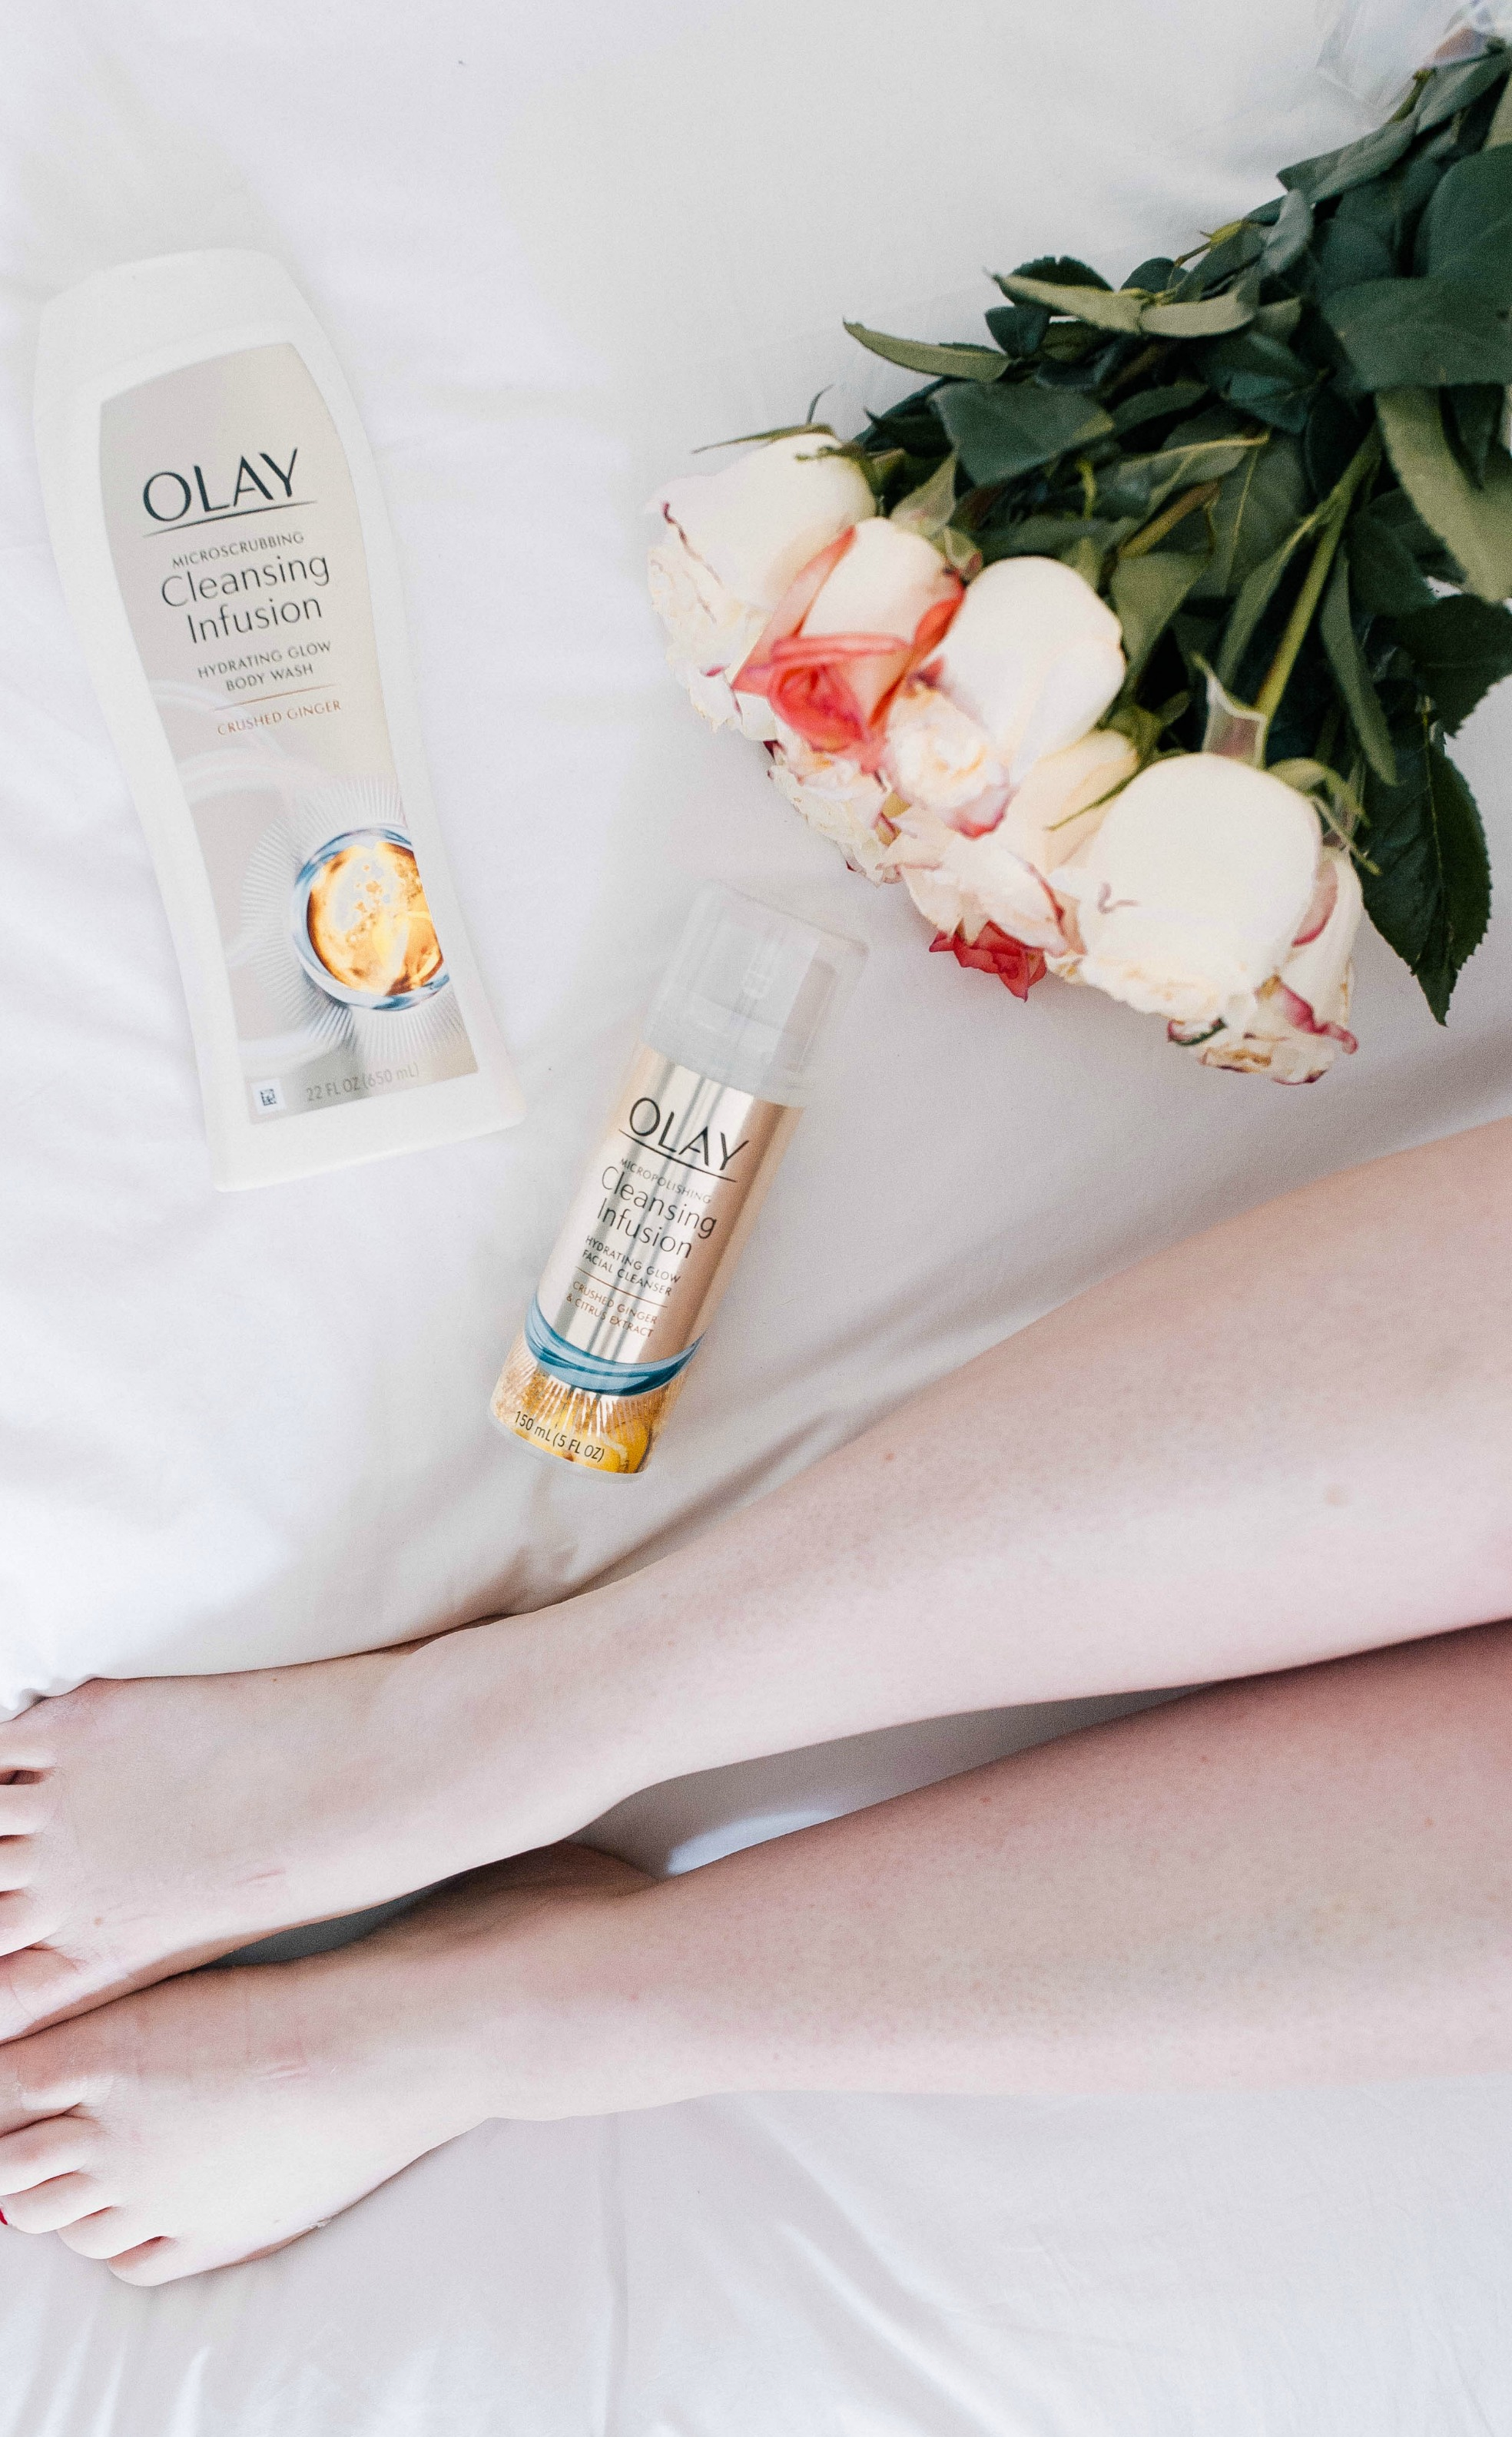 Olay Cleansing Infusions Review